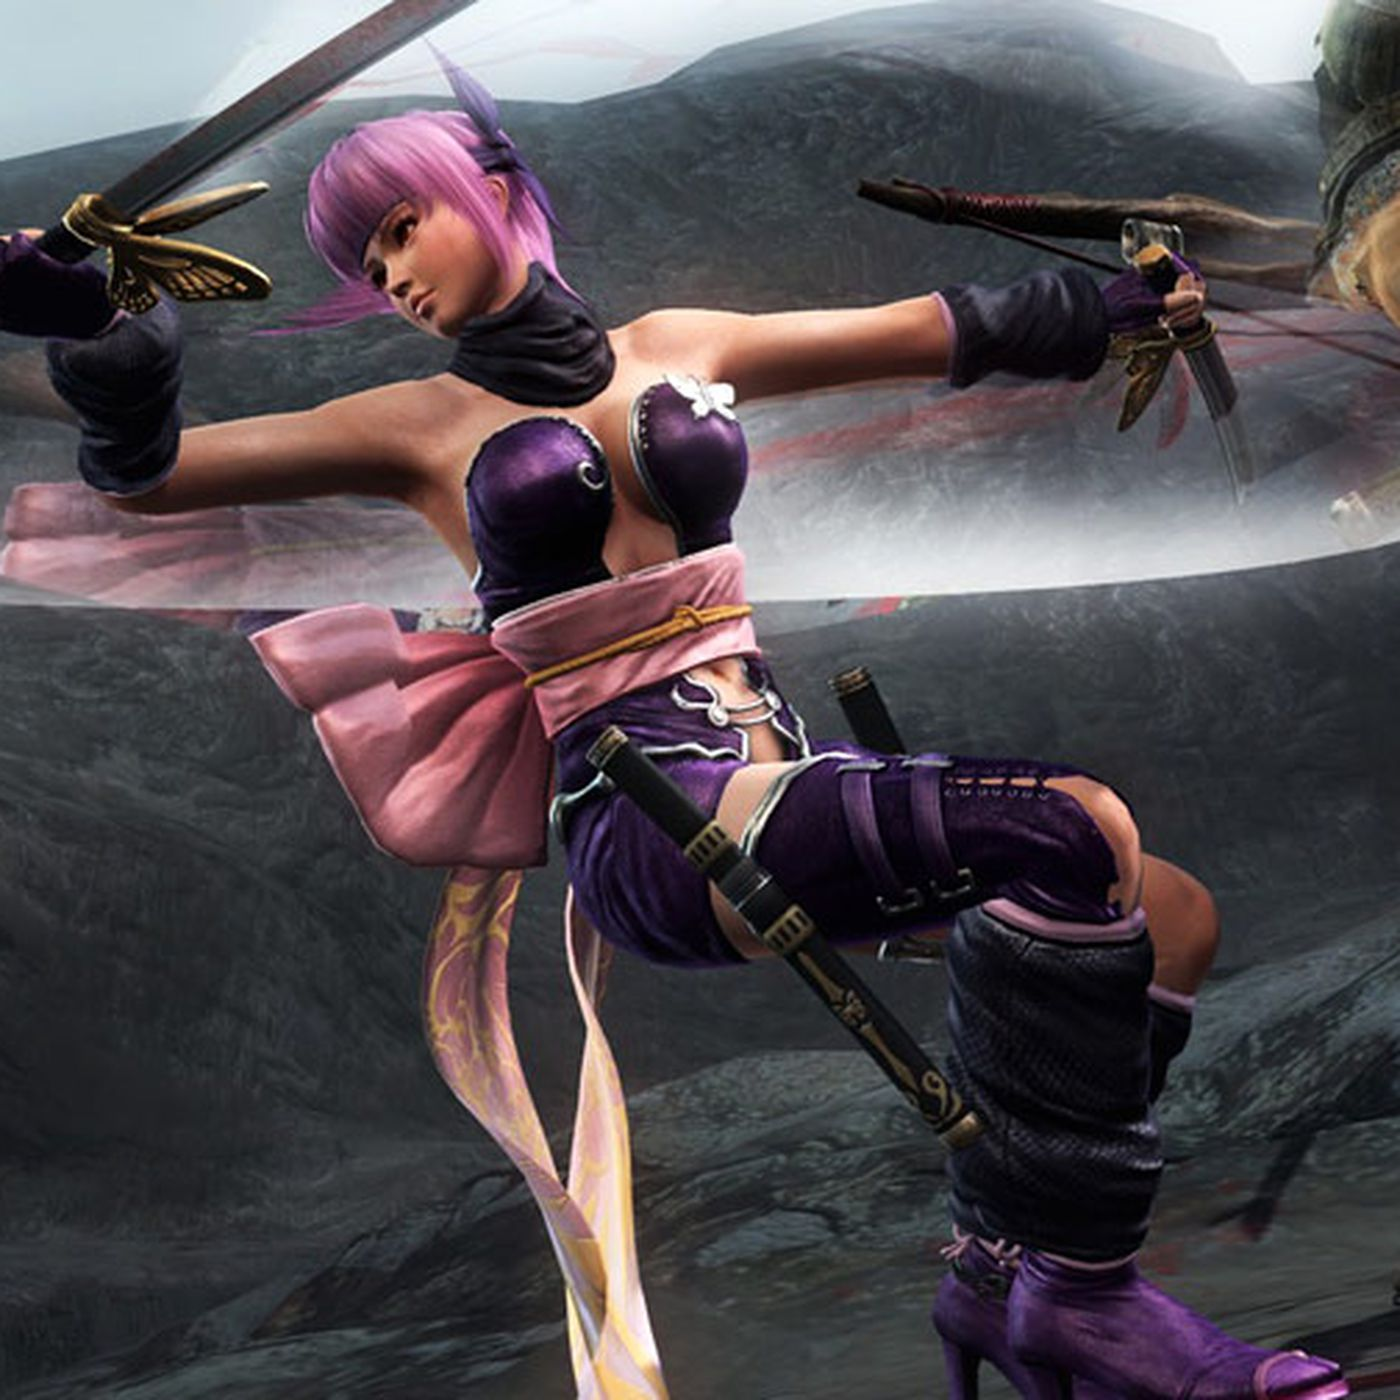 Ninja Gaiden 3 Razor S Edge For Wii U Comes To Australia May 11 Polygon